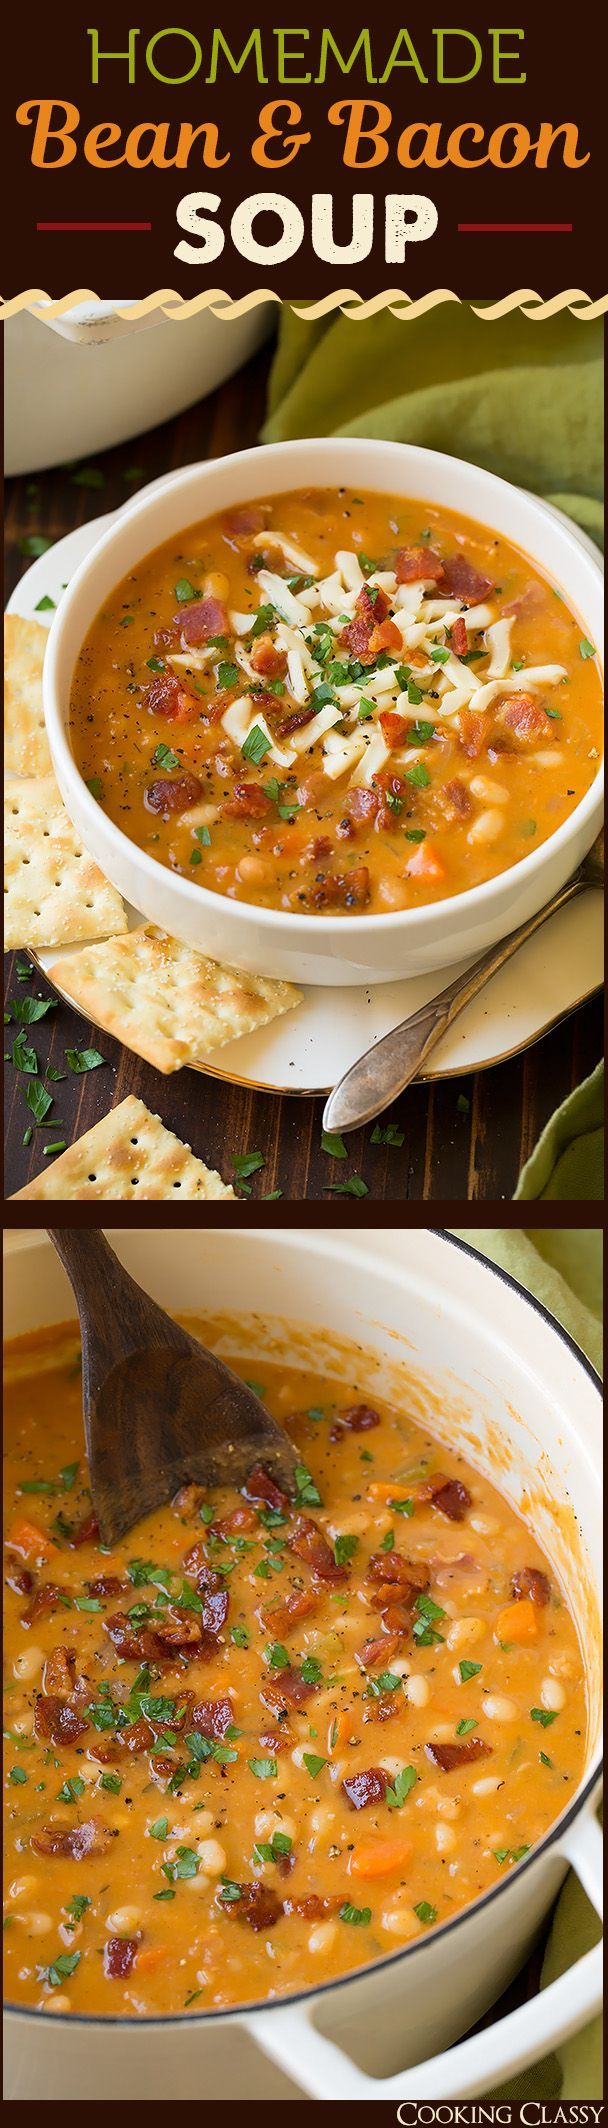 Bean and Bacon Soup - Way better than the canned stuff! Where has this been all my life??